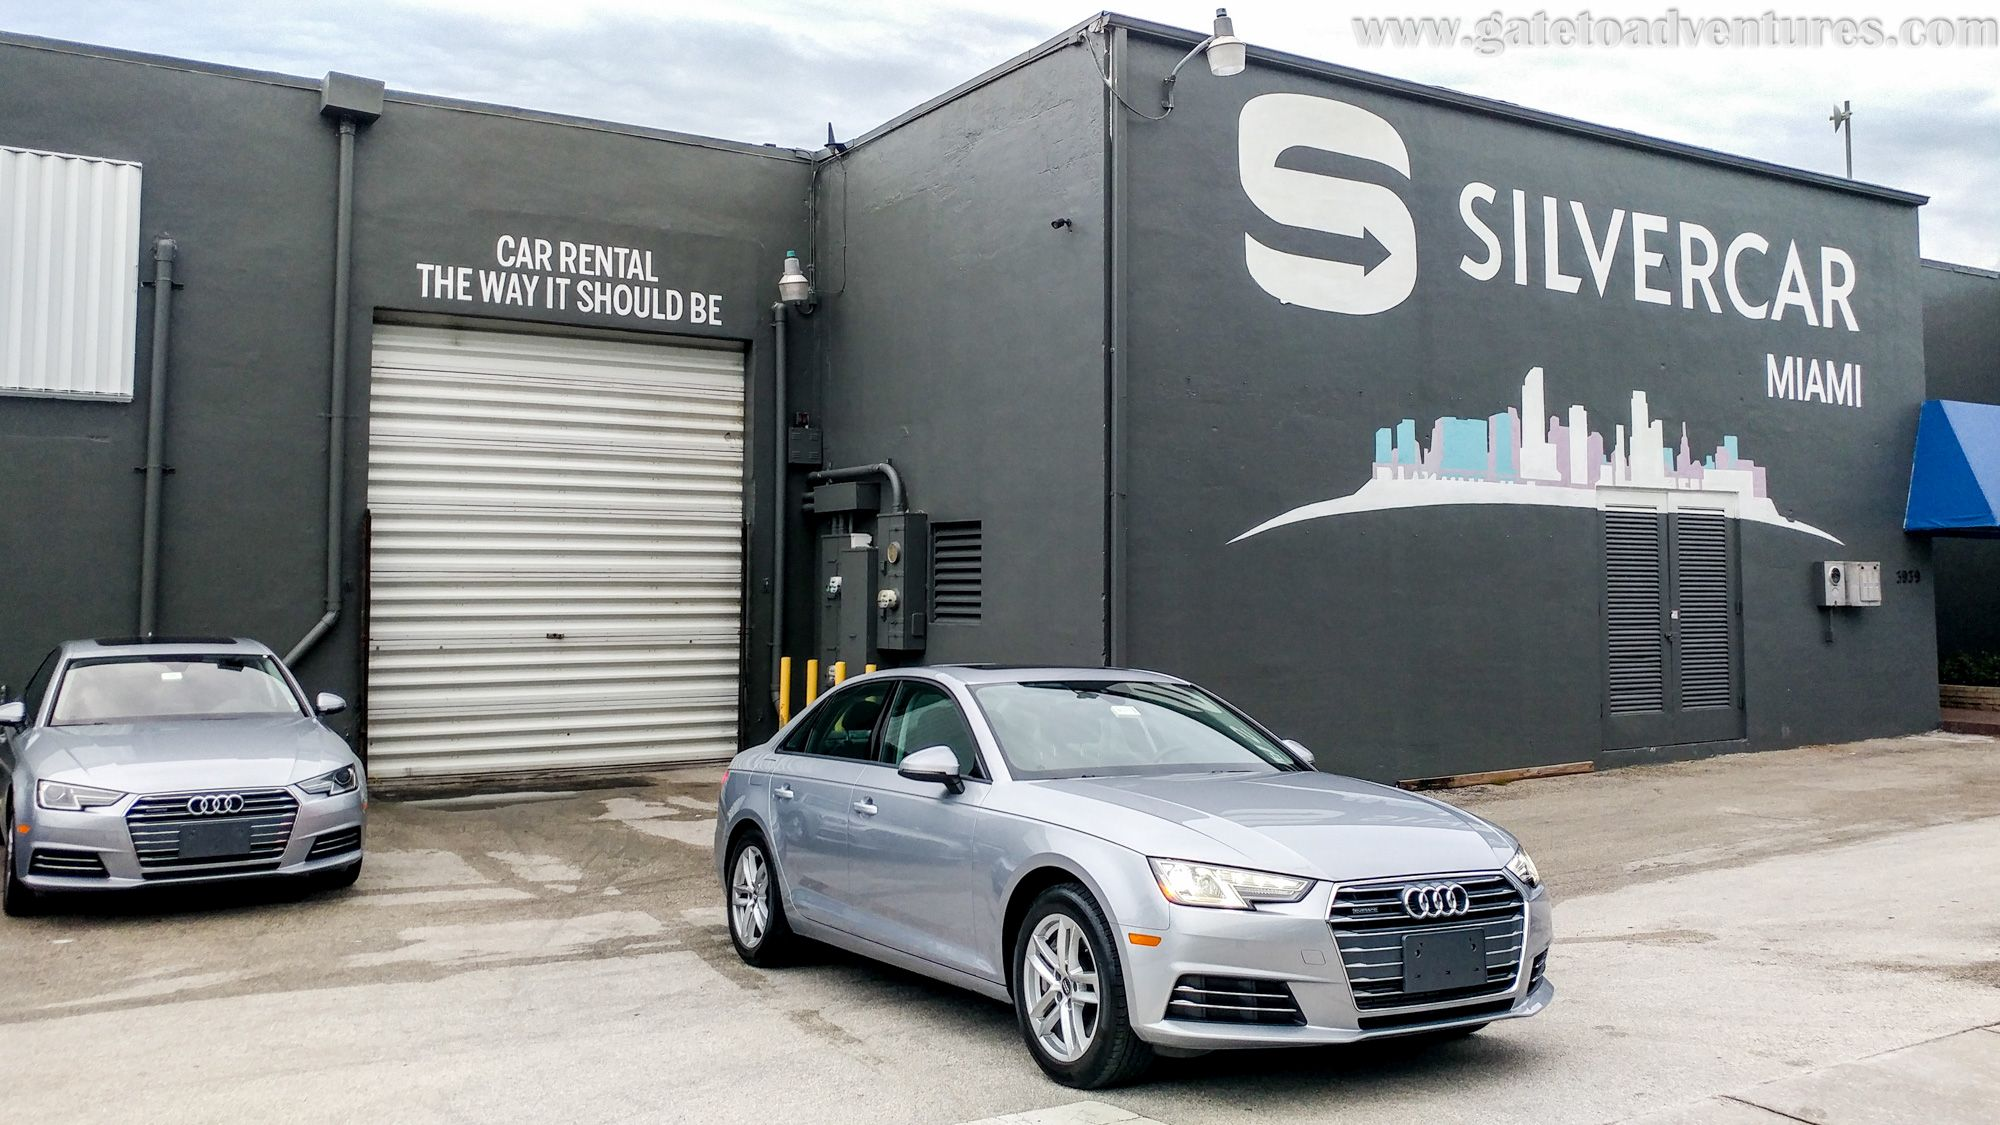 Review: Silvercar at Miami International Airport (MIA)